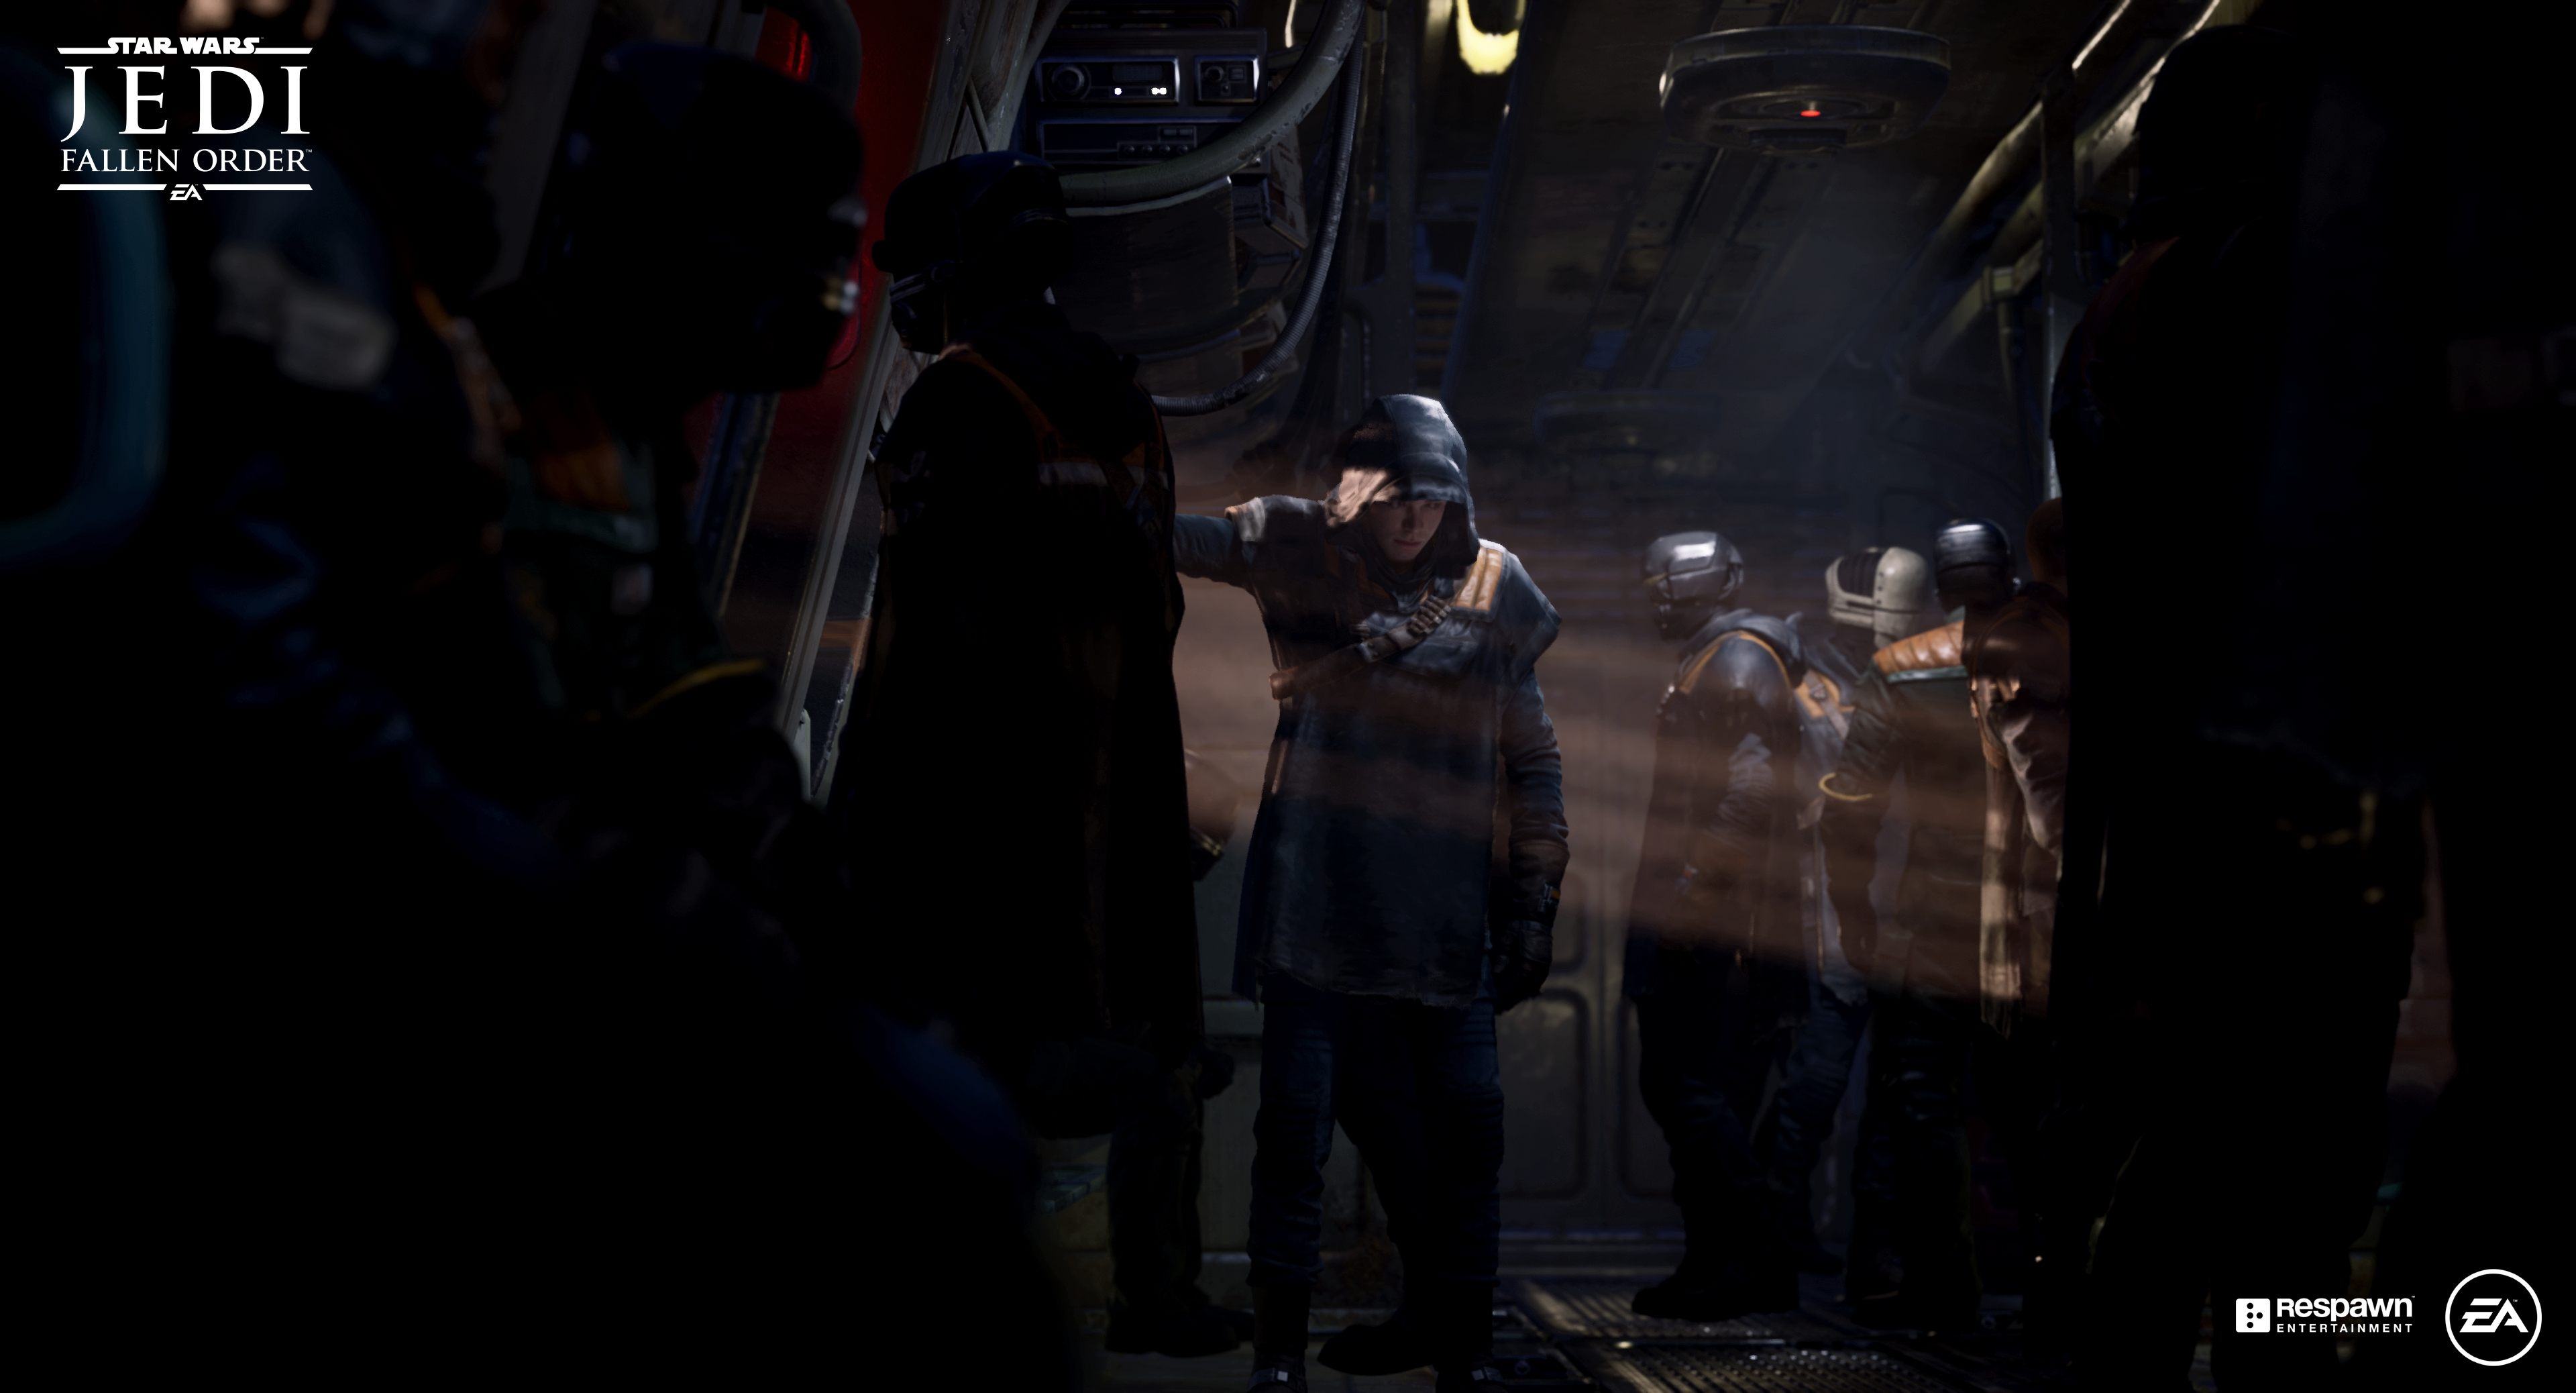 Star Wars Jedi Fallen Order Screen 4